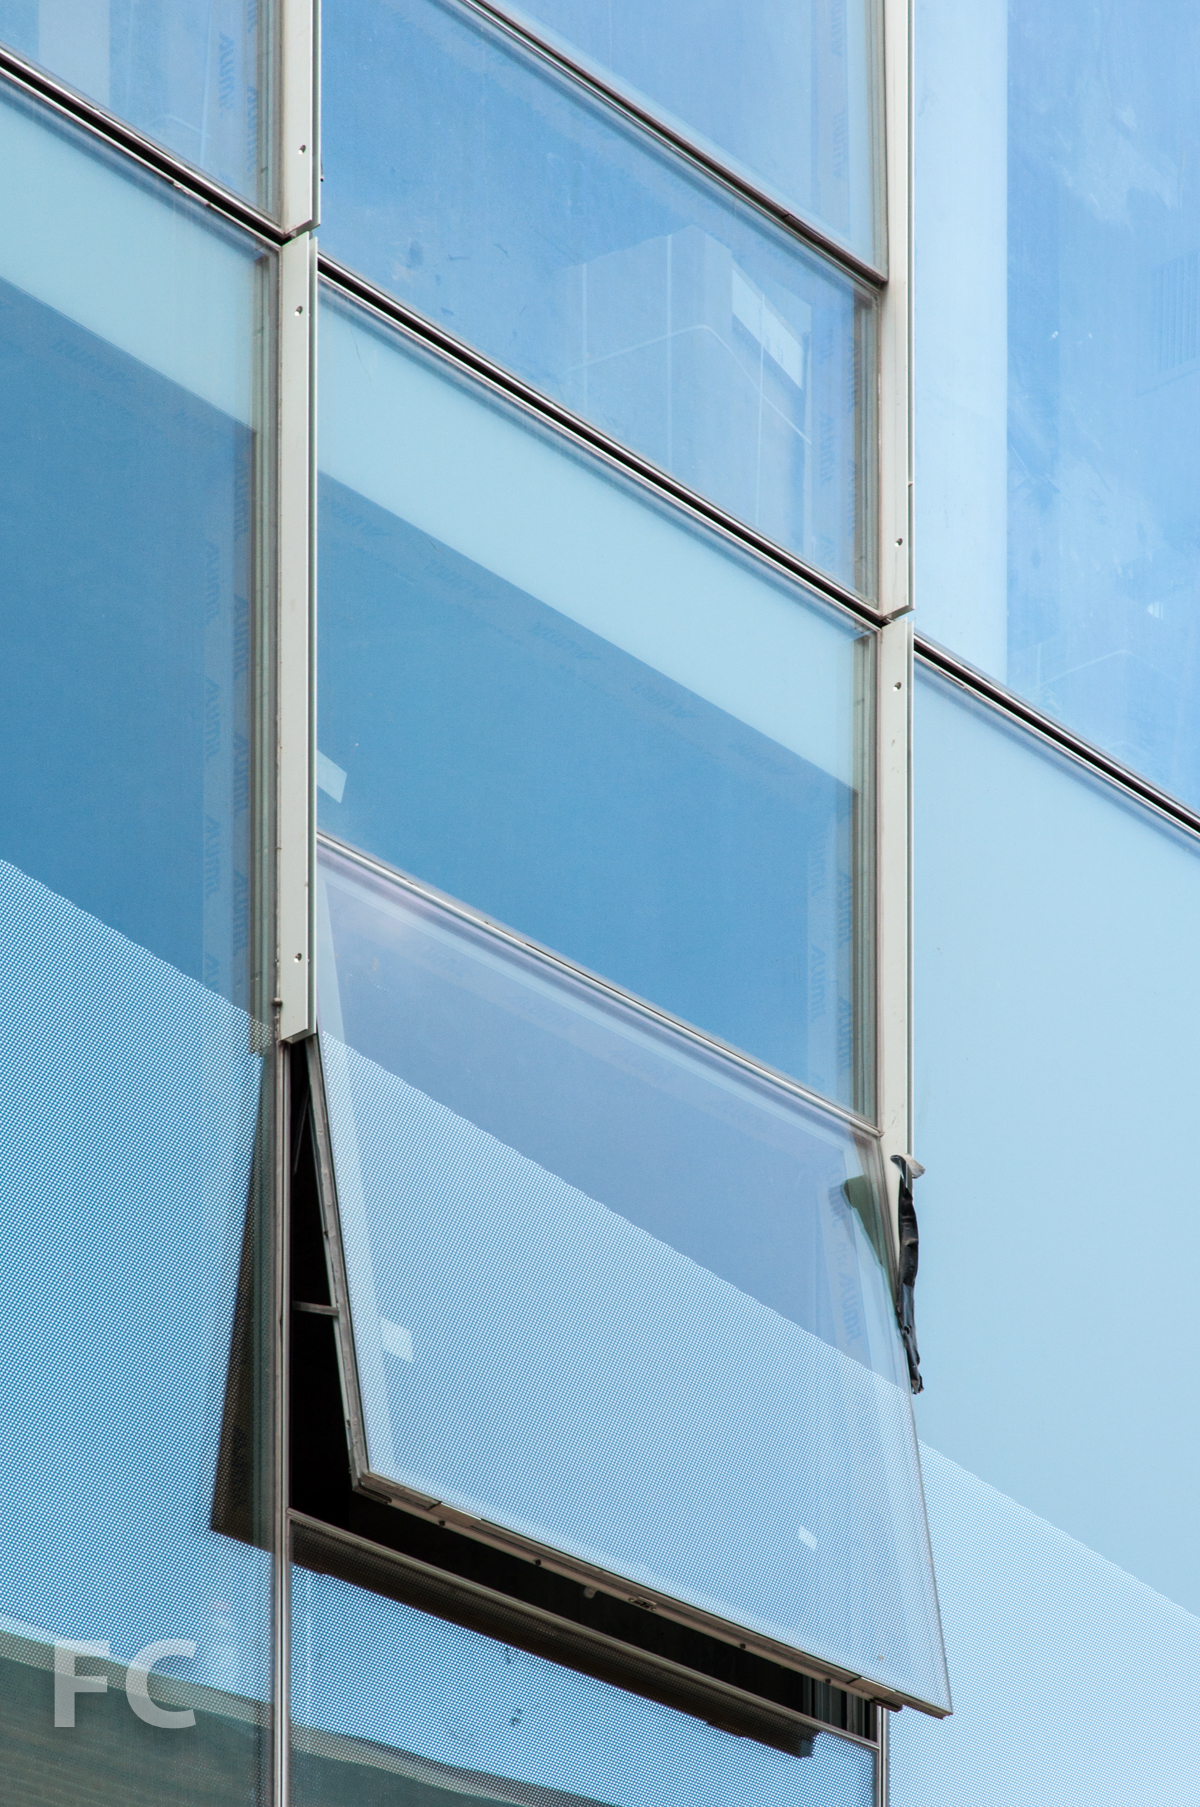 Detail of operable window and frit pattern.